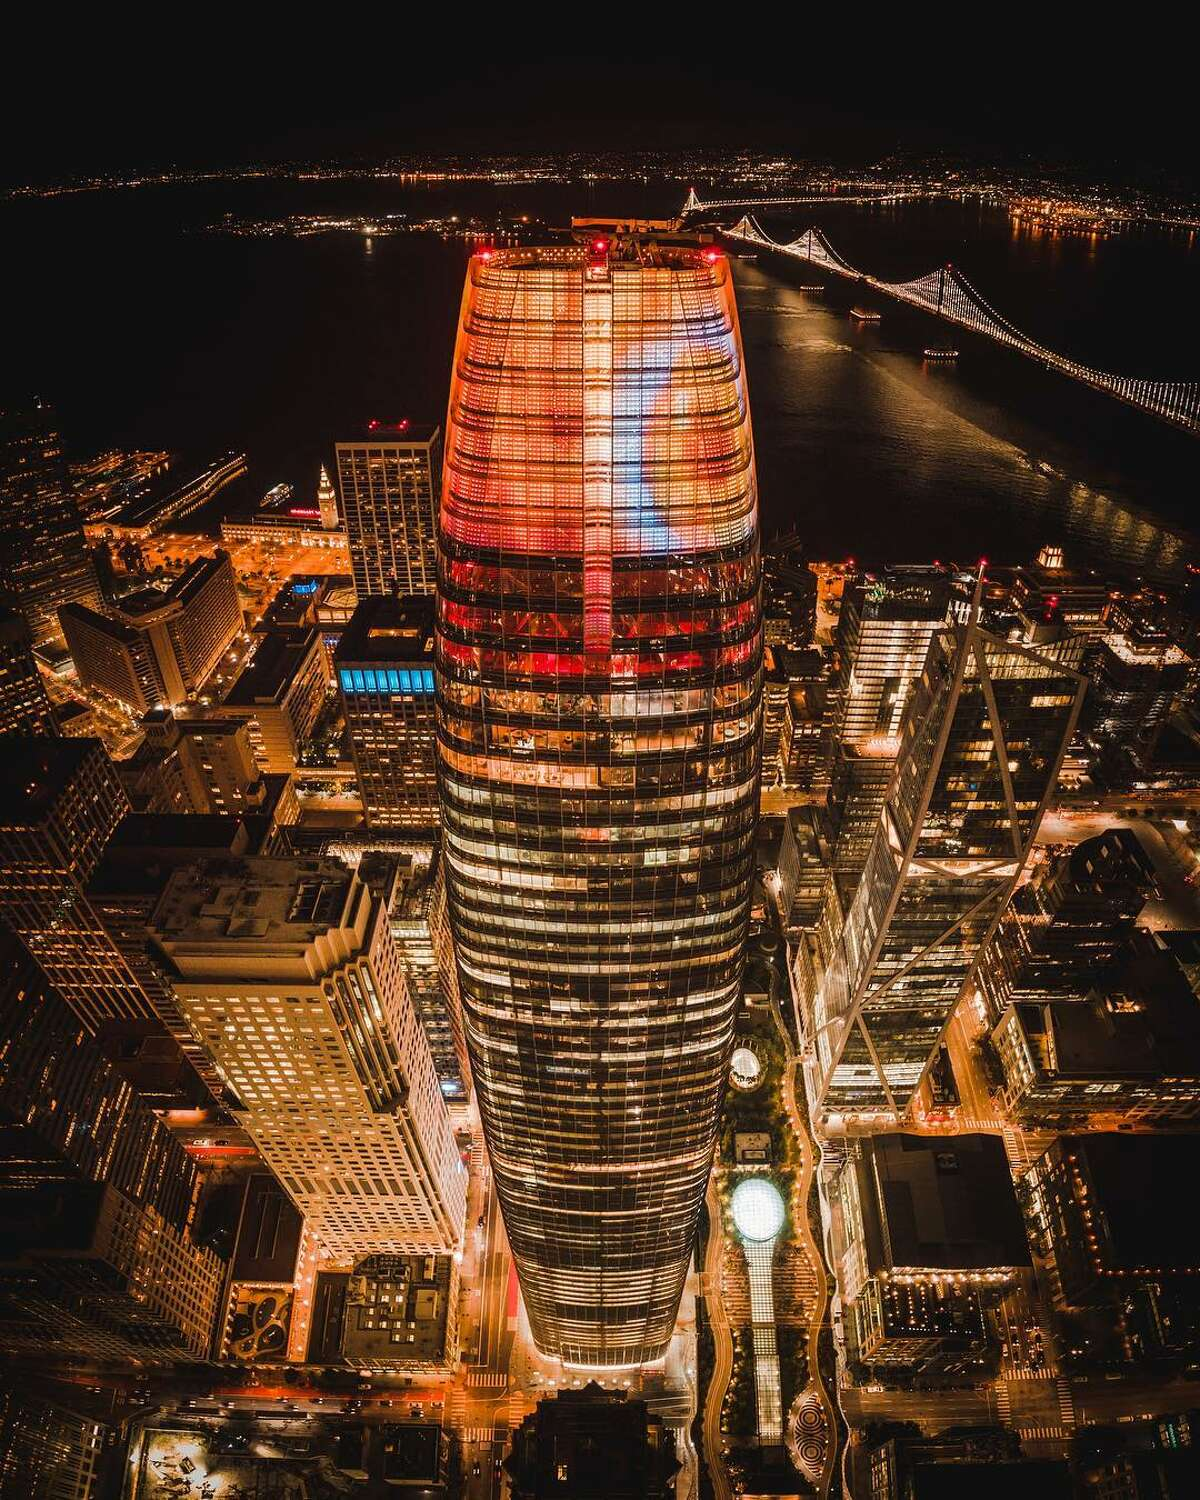 The Firery Eye of Sauron stared down at the San Francisco Bay Area from the top of Salesforce Tower on Halloween night.